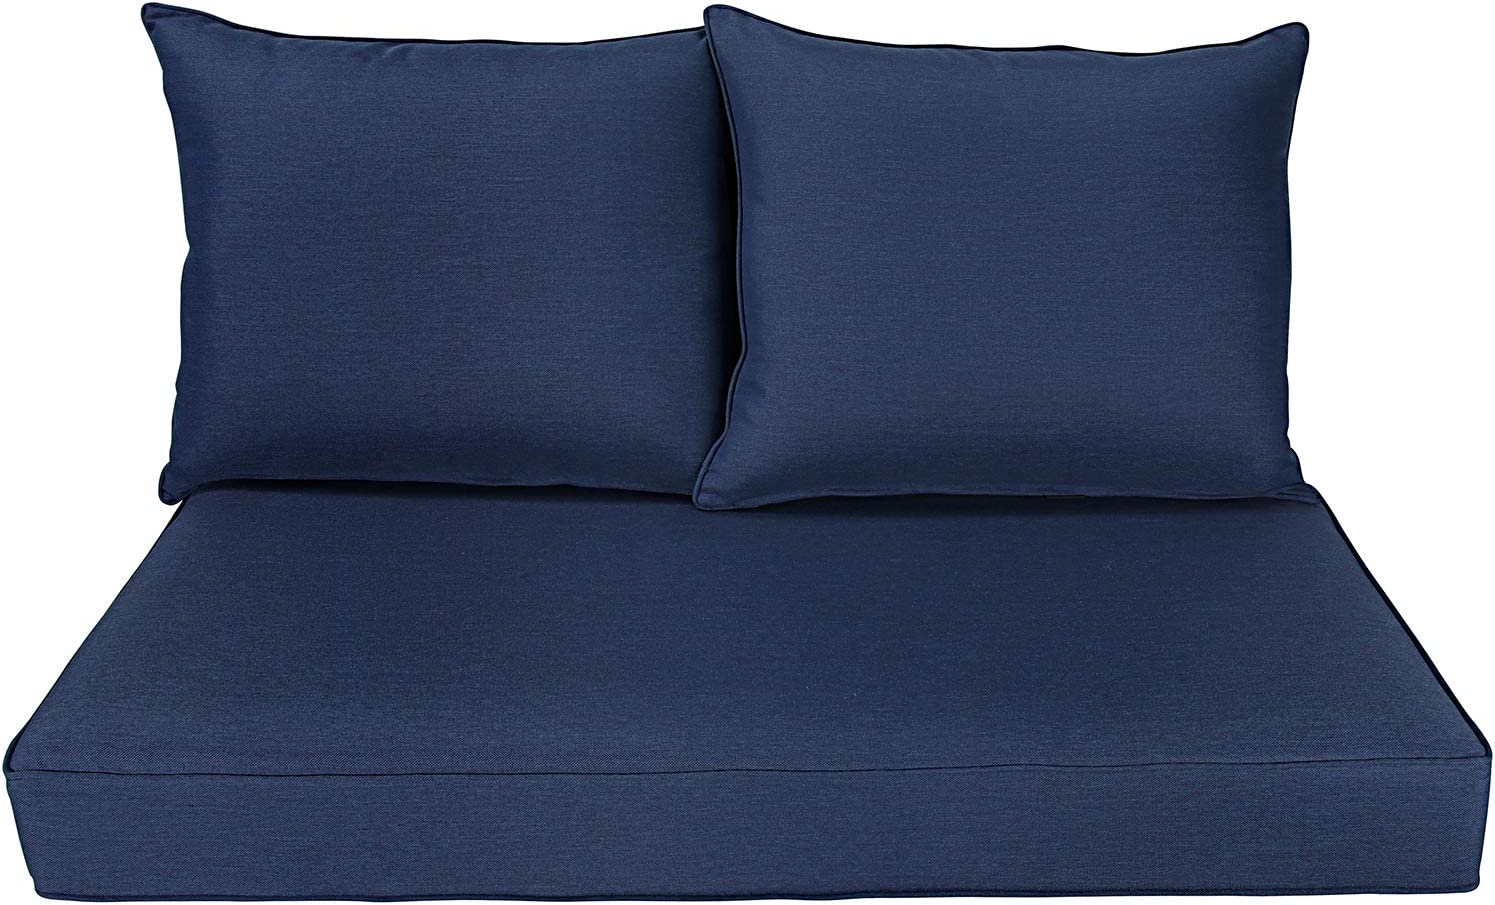 BOSSIMA Patio Furniture Cushions Comofort Deep Seat Loveseat Cushion Indoor Outdoor Seating Cushions Navy Blue